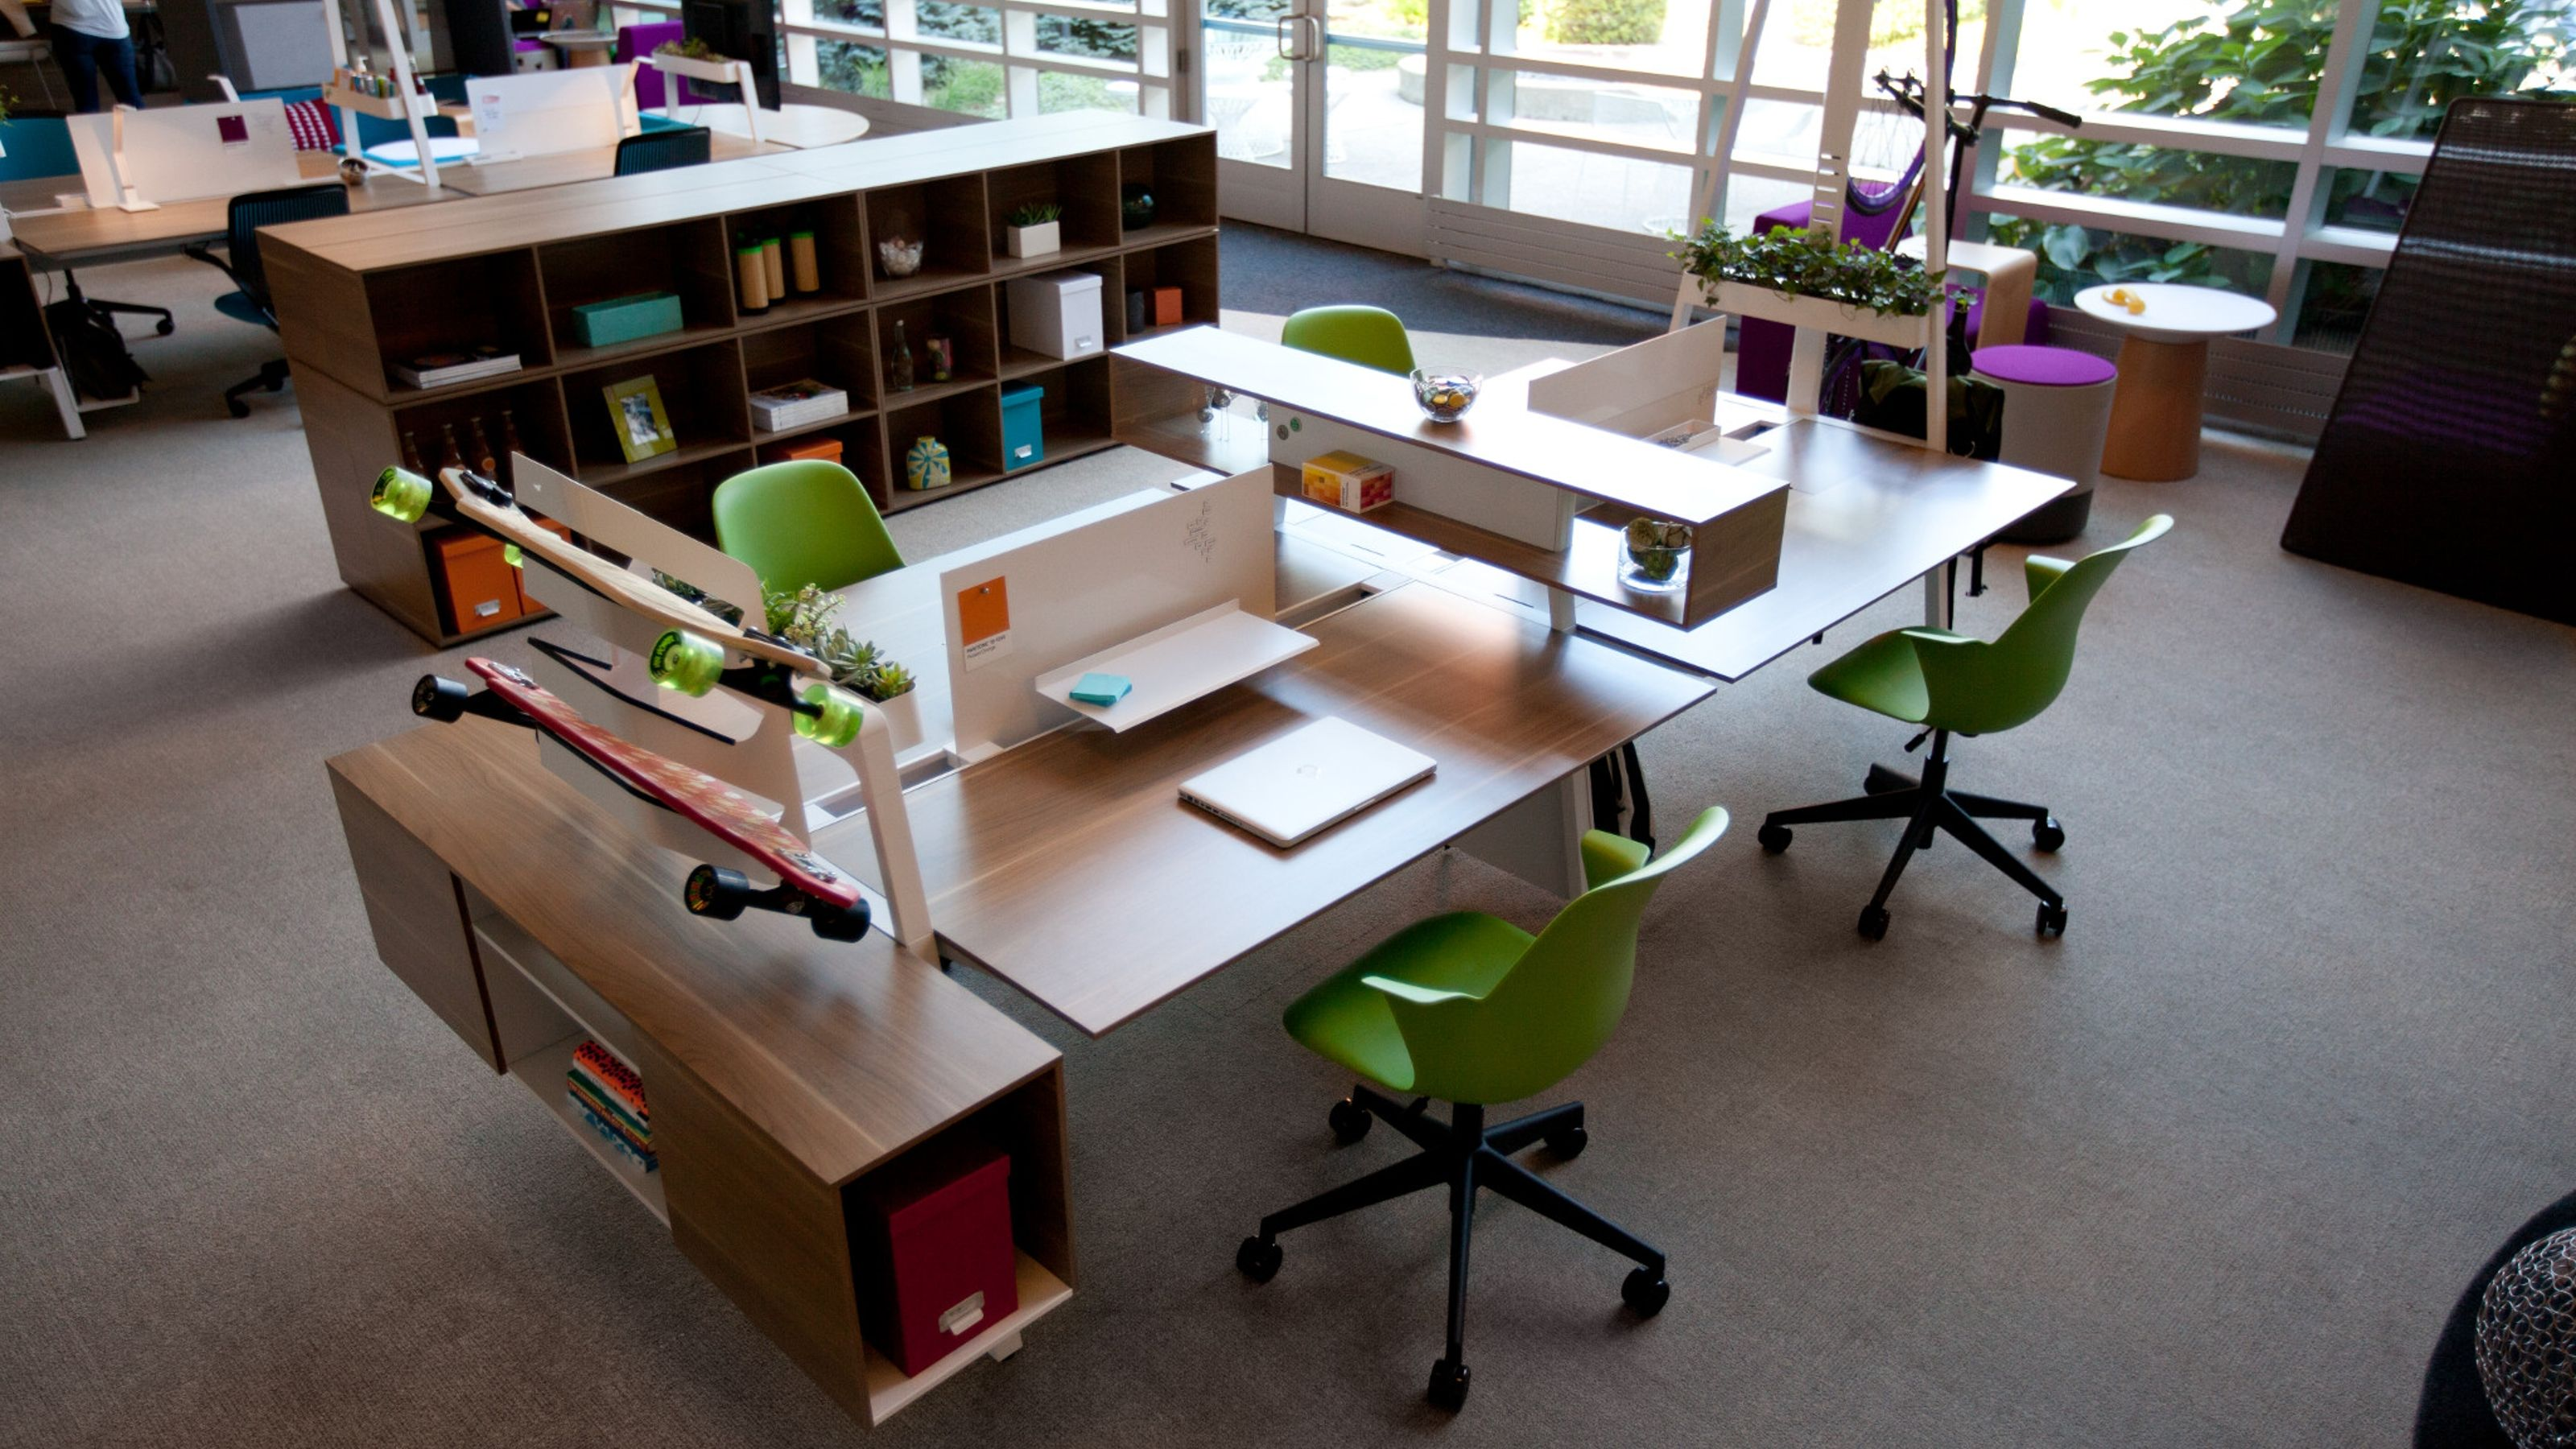 Modern Workstation With Bivi Table For Two, Bivi Trunk, And Shortcut Chair